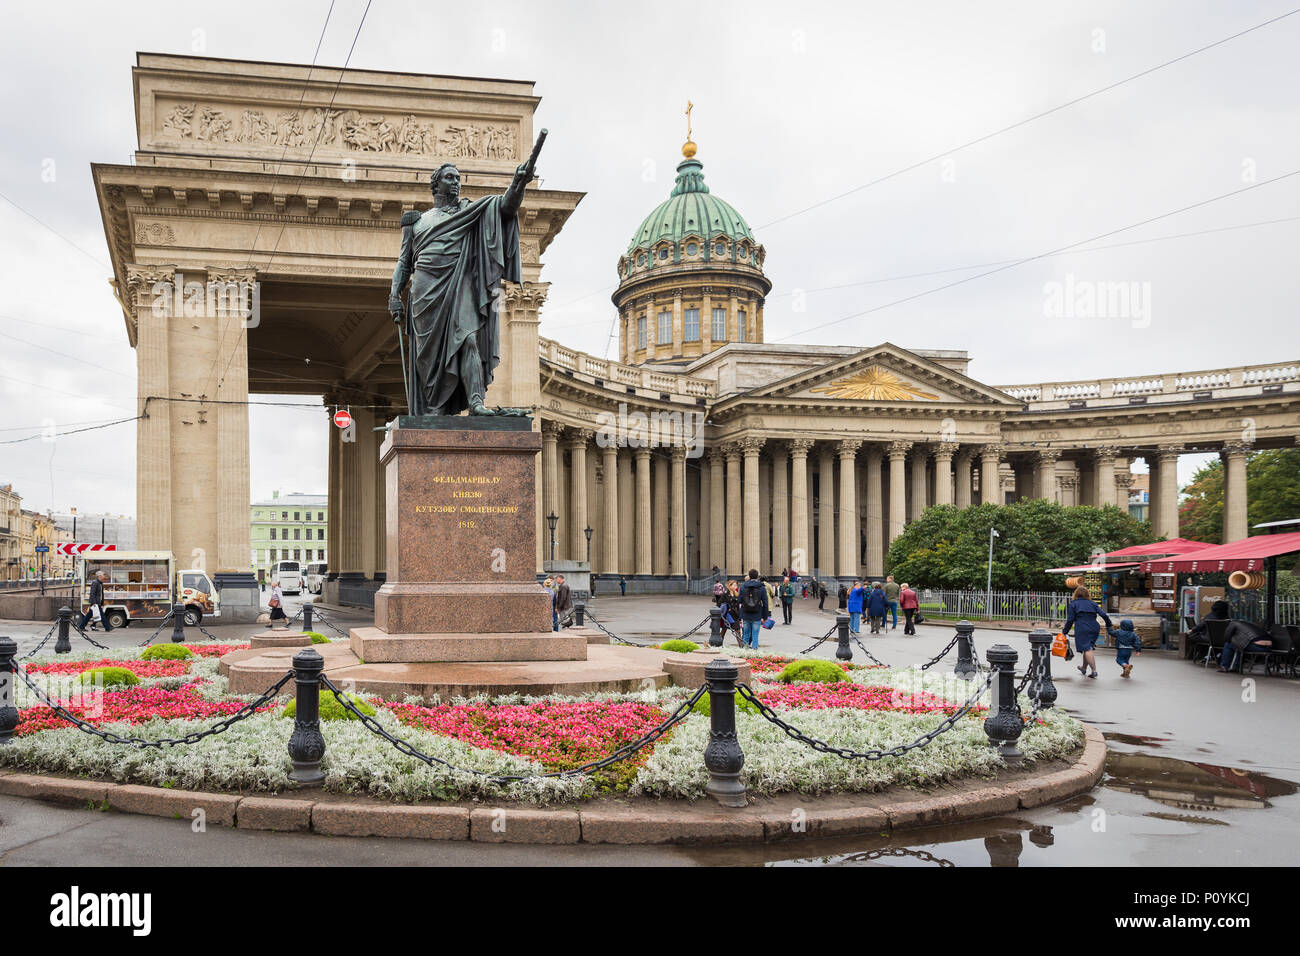 Saint Petersburg, Russia - September 17, 2017: Statue of Prince Kutuzov Smolensky in front of Kazan cathedral or cathedral of our lady of Kazan in Sai - Stock Image